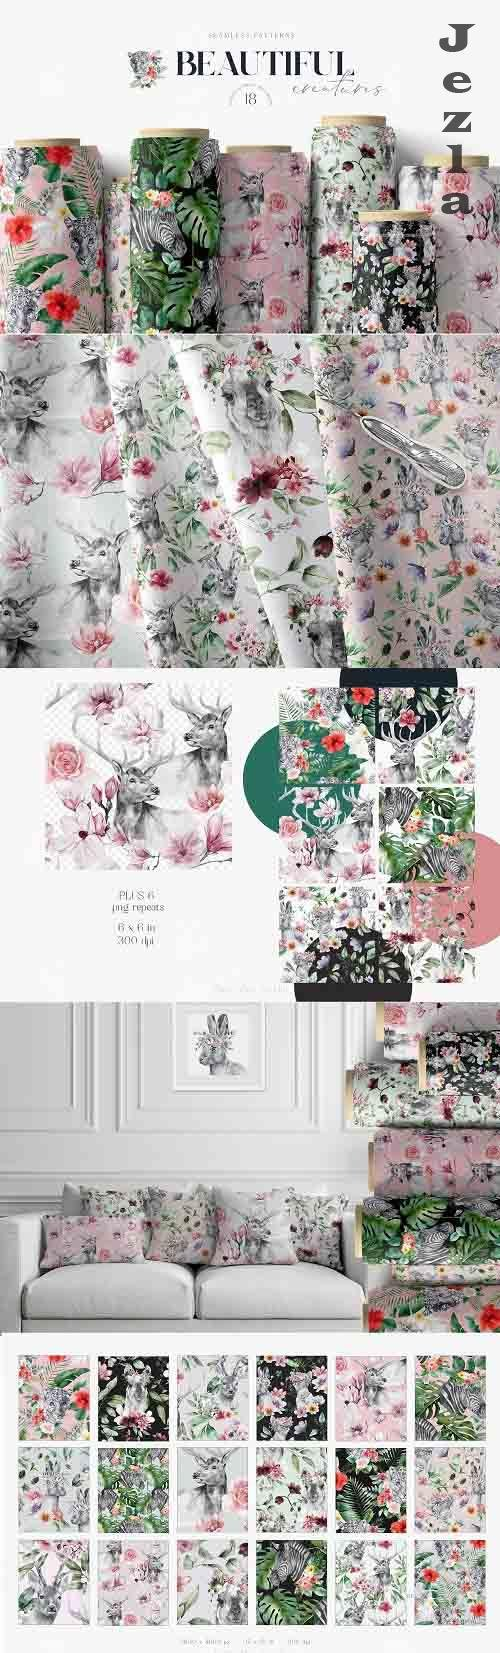 Animals and Flowers Seamless Patterns | Summer Patterns - 1373134